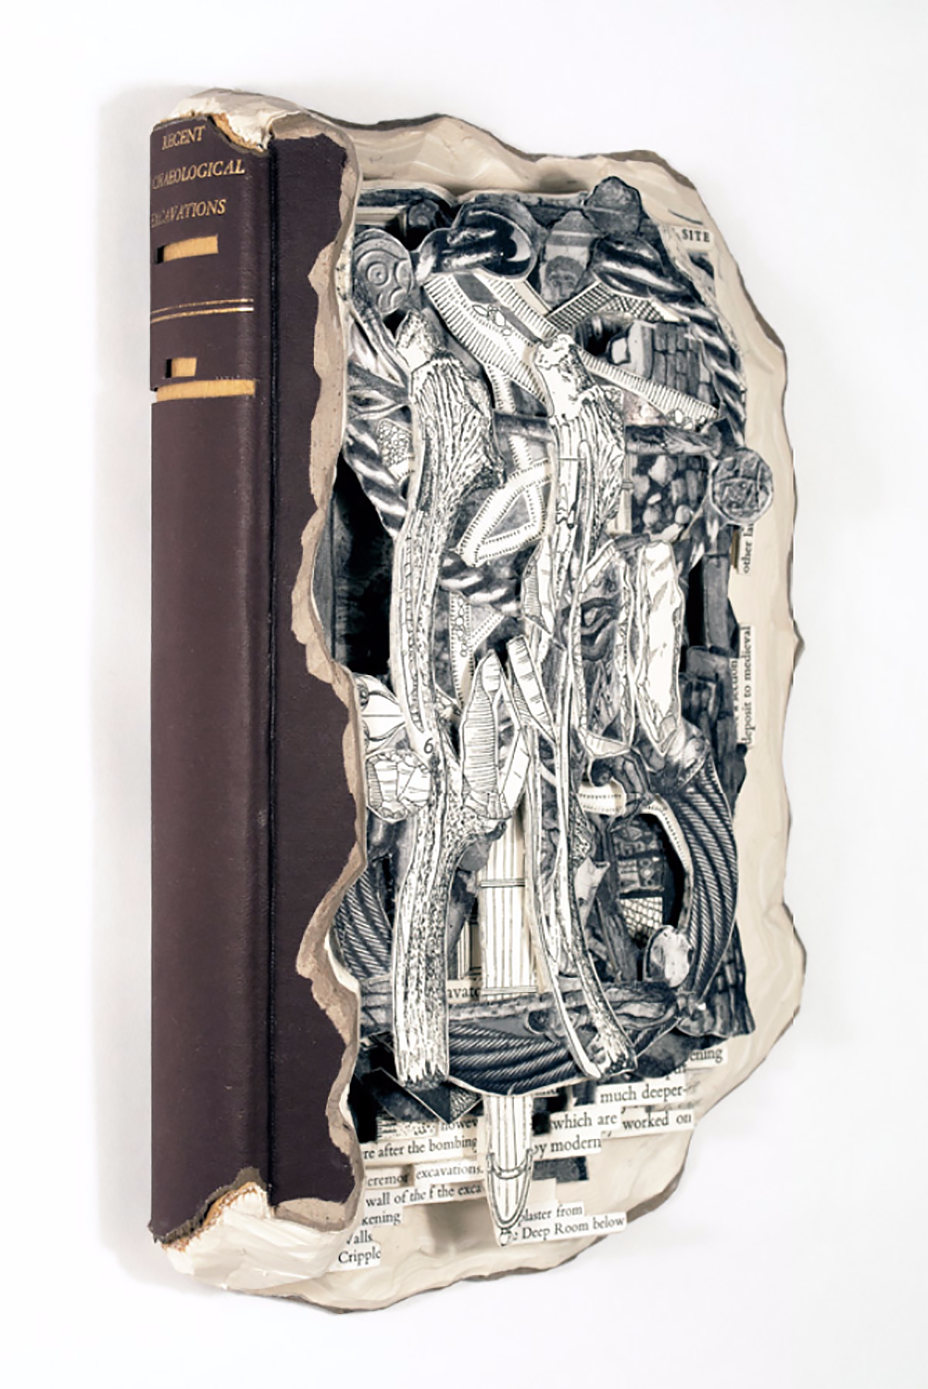 Carved Encyclopedias Transformed Dada-Inspired Sculptures